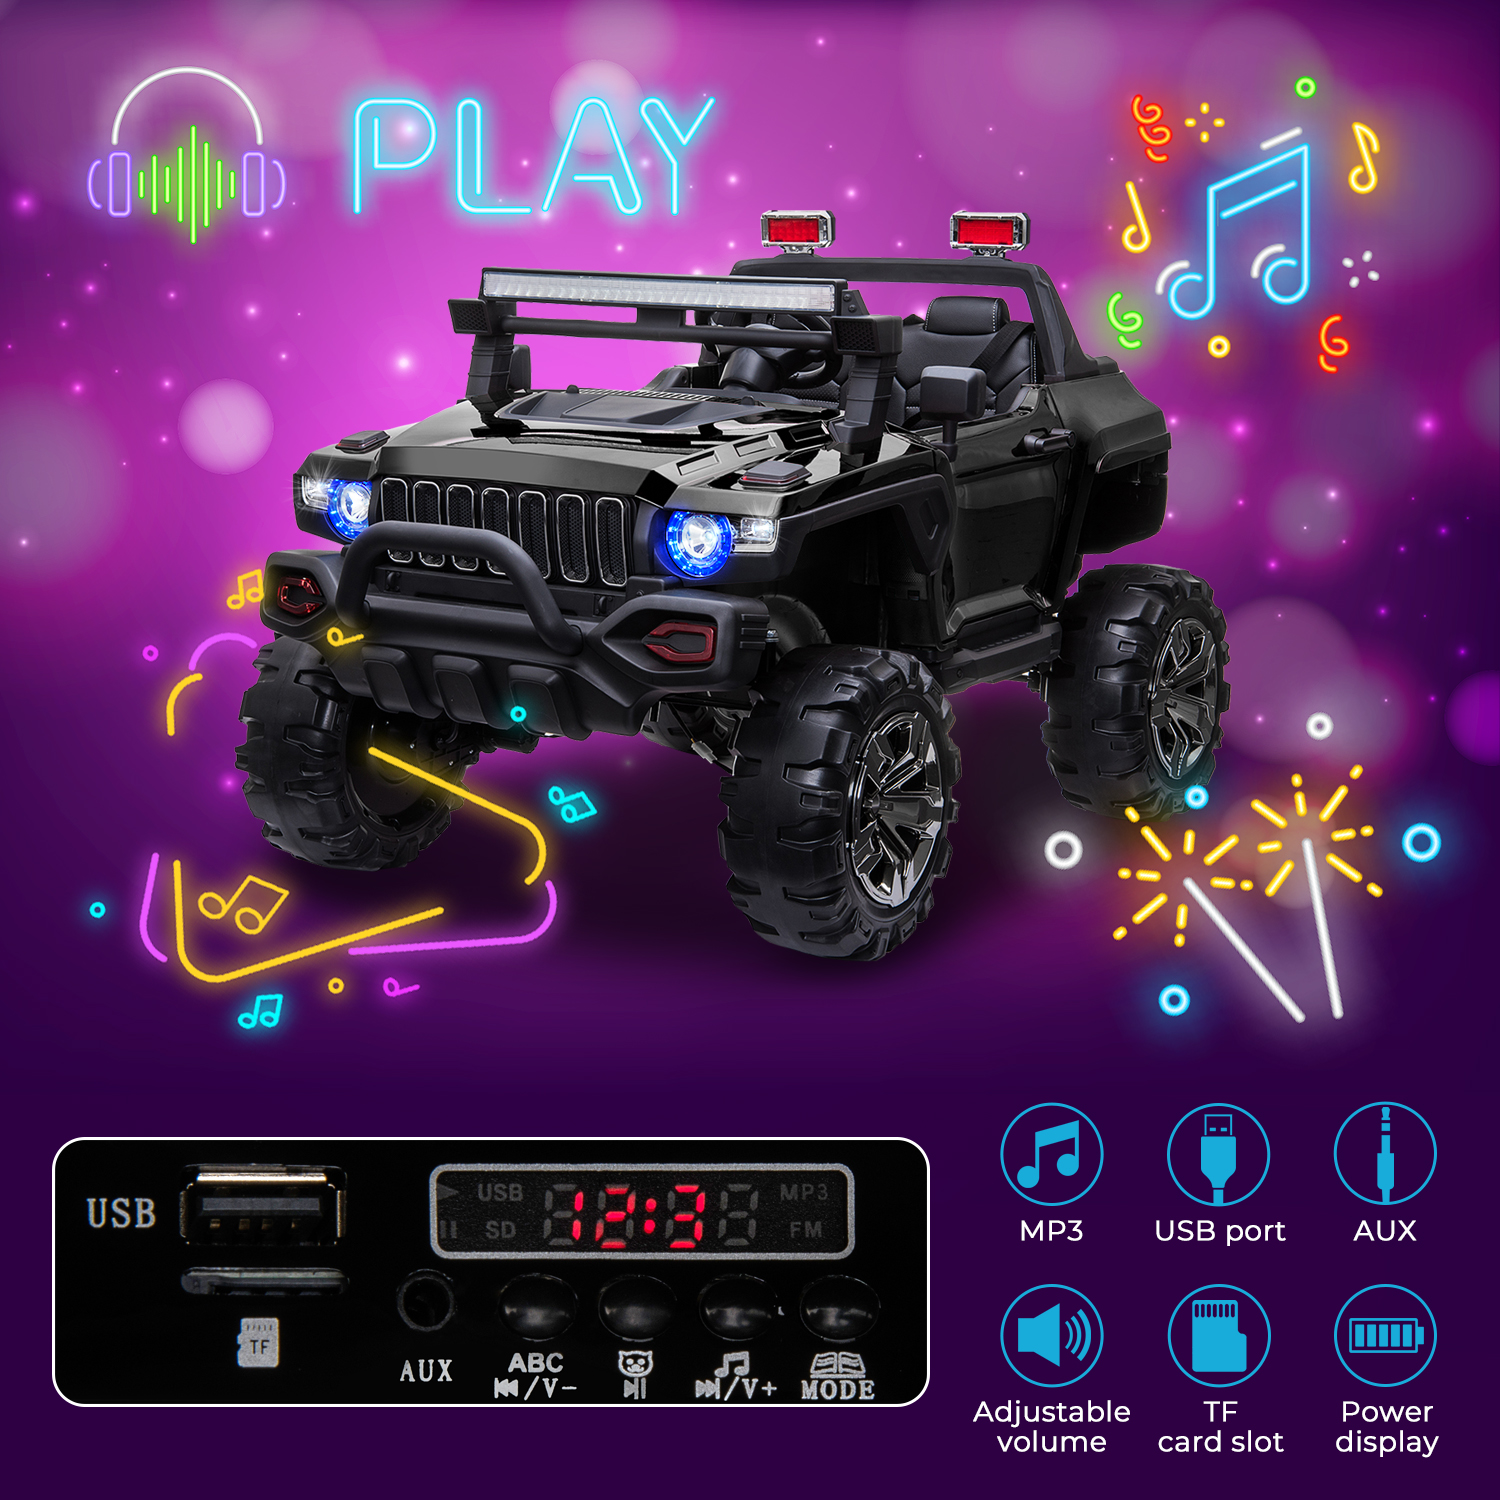 2-Seaters-4-4-Off-Road-Electric-12V-Ride-on-Car-with-Remote-Control miniature 14